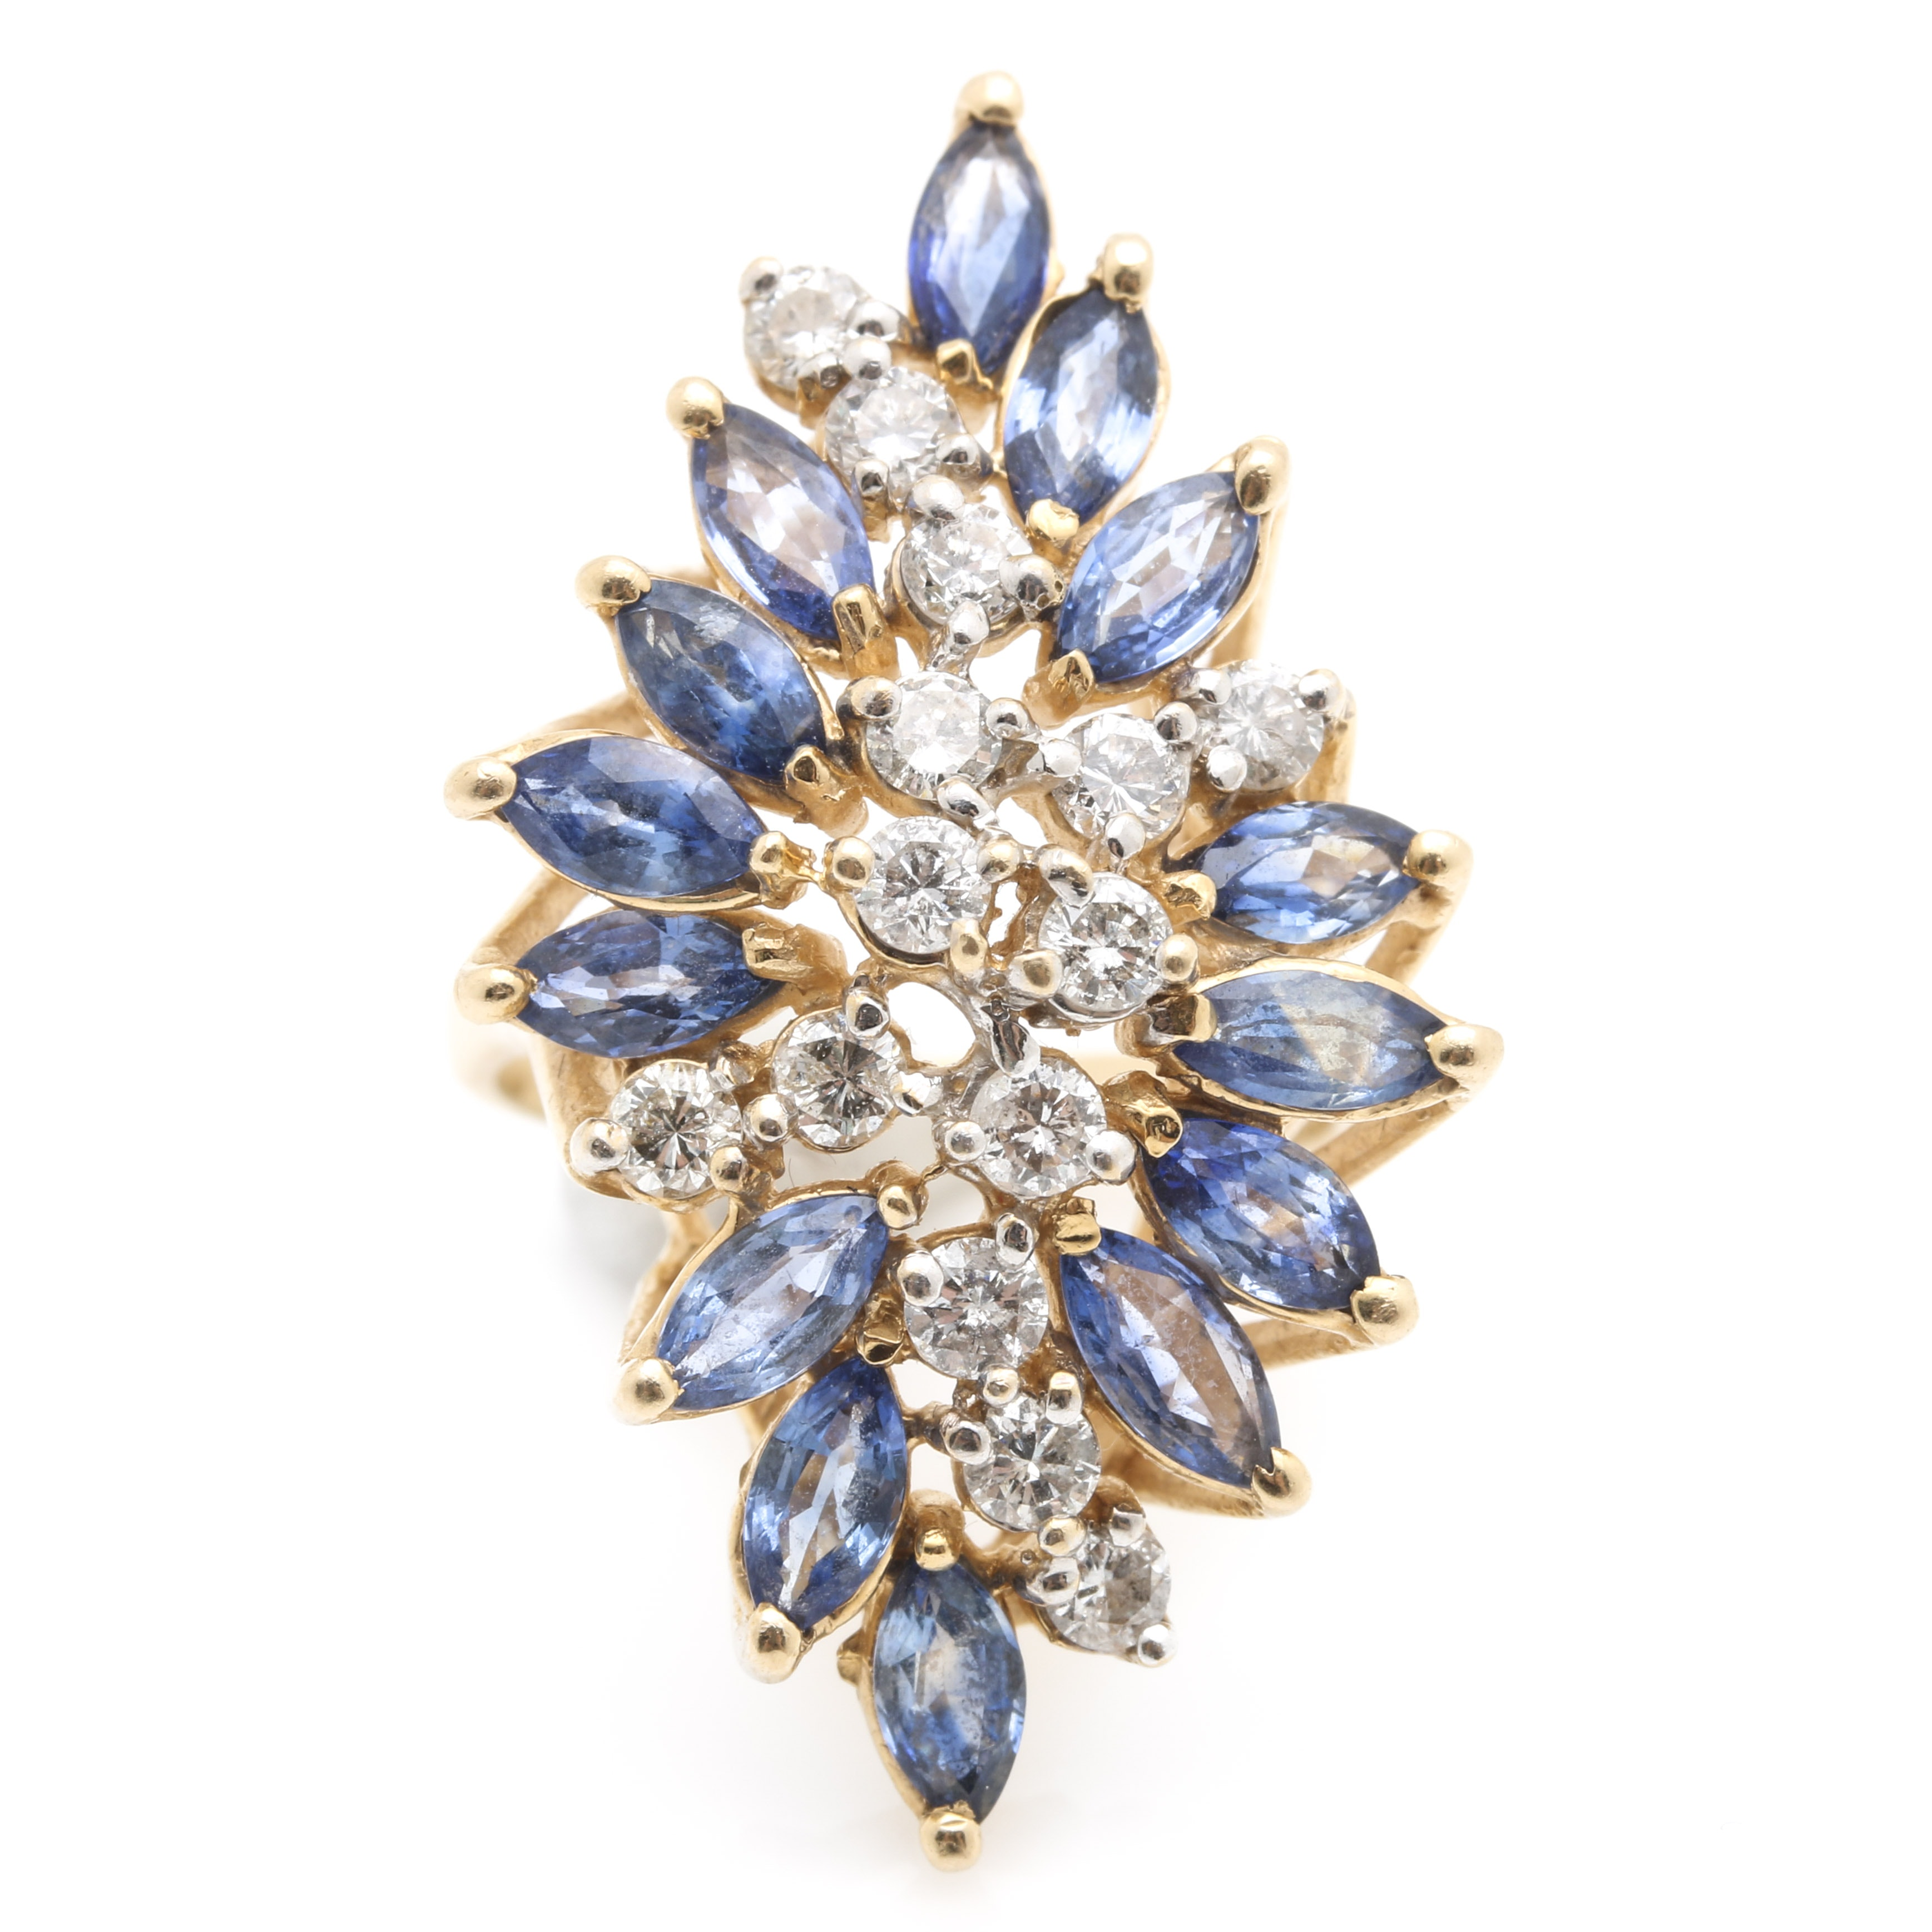 14K Yellow Gold 3.96 CTW Sapphire and 0.98 CTW Diamond Cocktail Ring